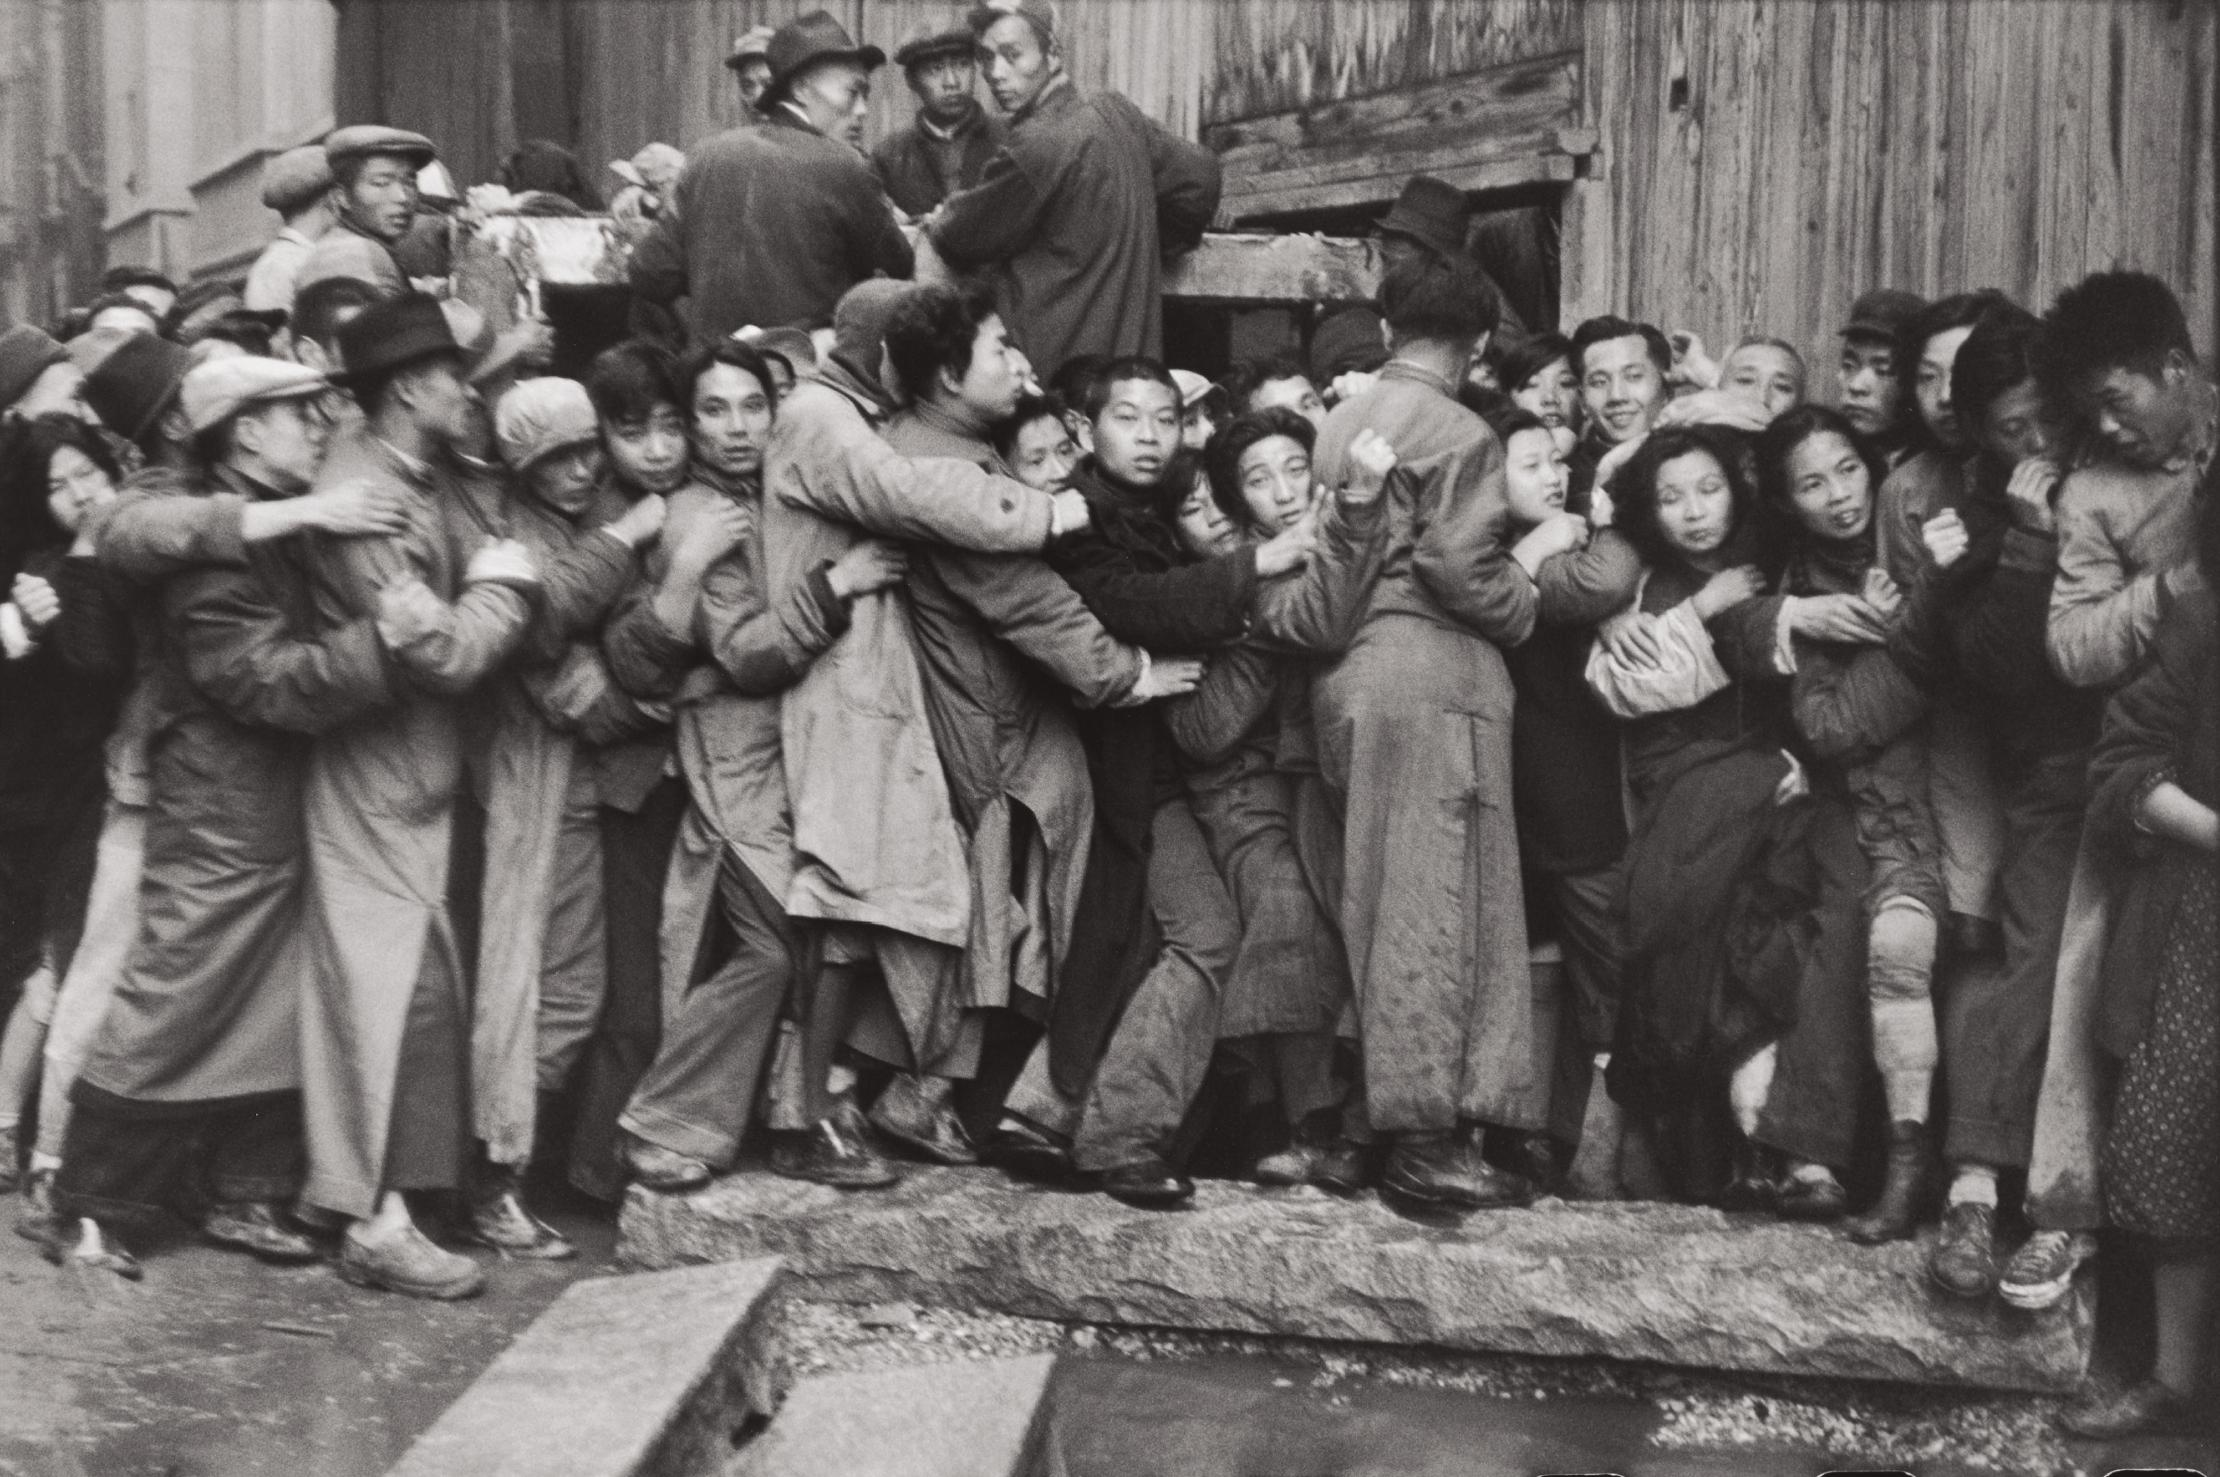 Henri Cartier-Bresson-The Last Days Of The Kuomintang (Market Crash), Shanghai, China-1949